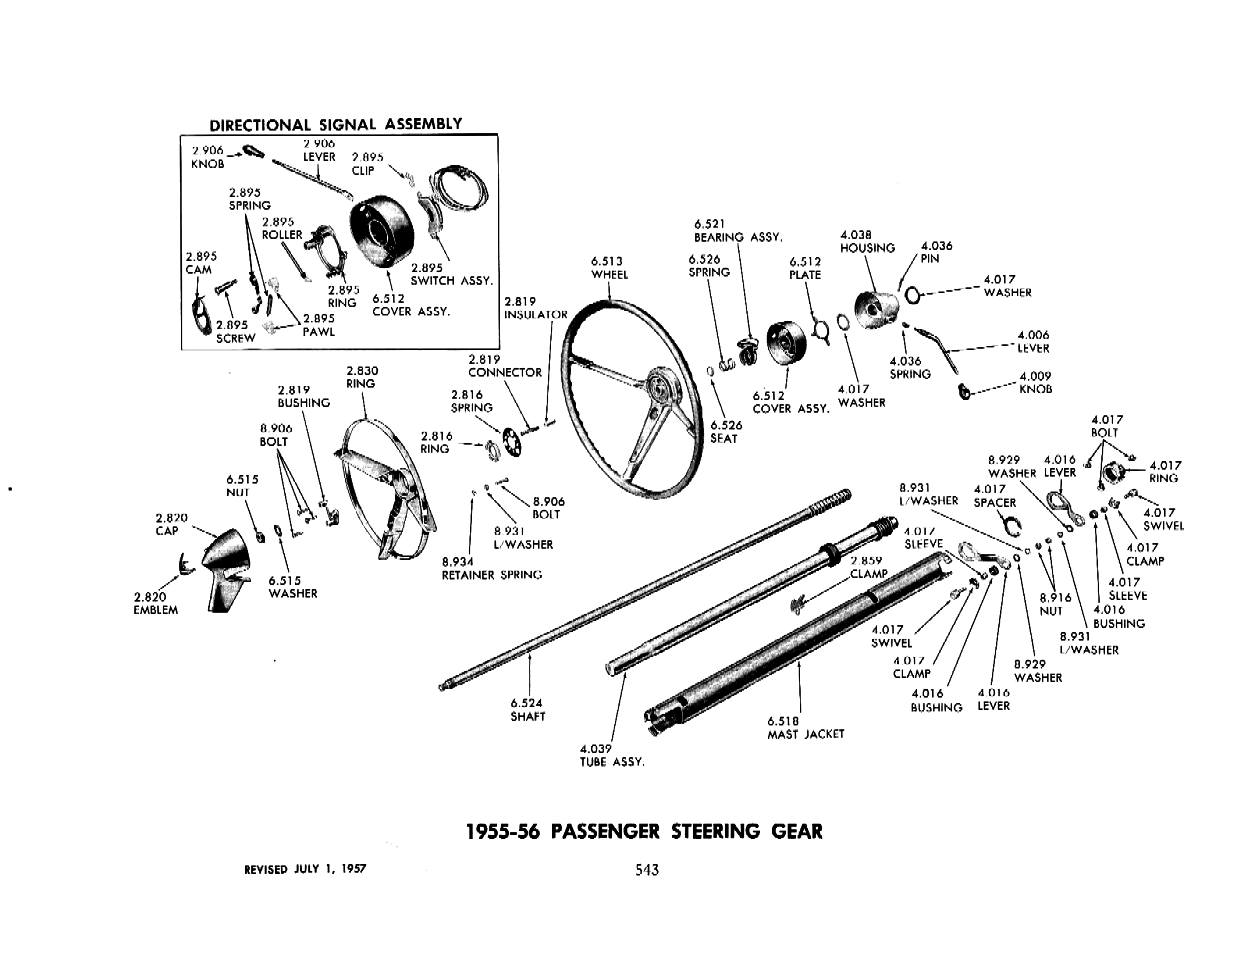 Jeep Wrangler Steering Column Wiring Diagram Block And Schematic Jeep  Cherokee Steering Diagram 1995 Jeep Wrangler Steering Column Wiring Diagram